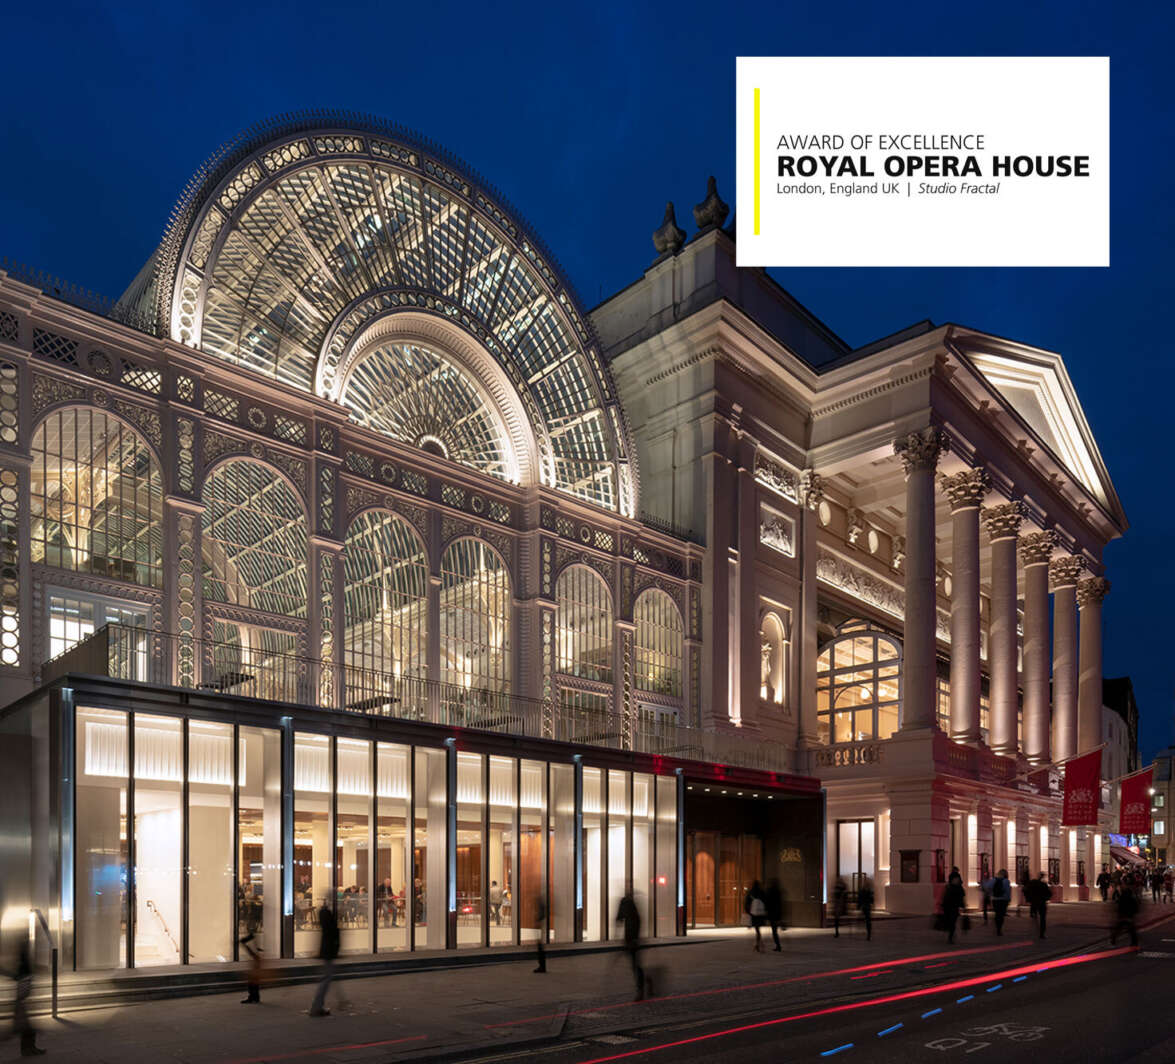 Royal Opera House wins Award of Excellence